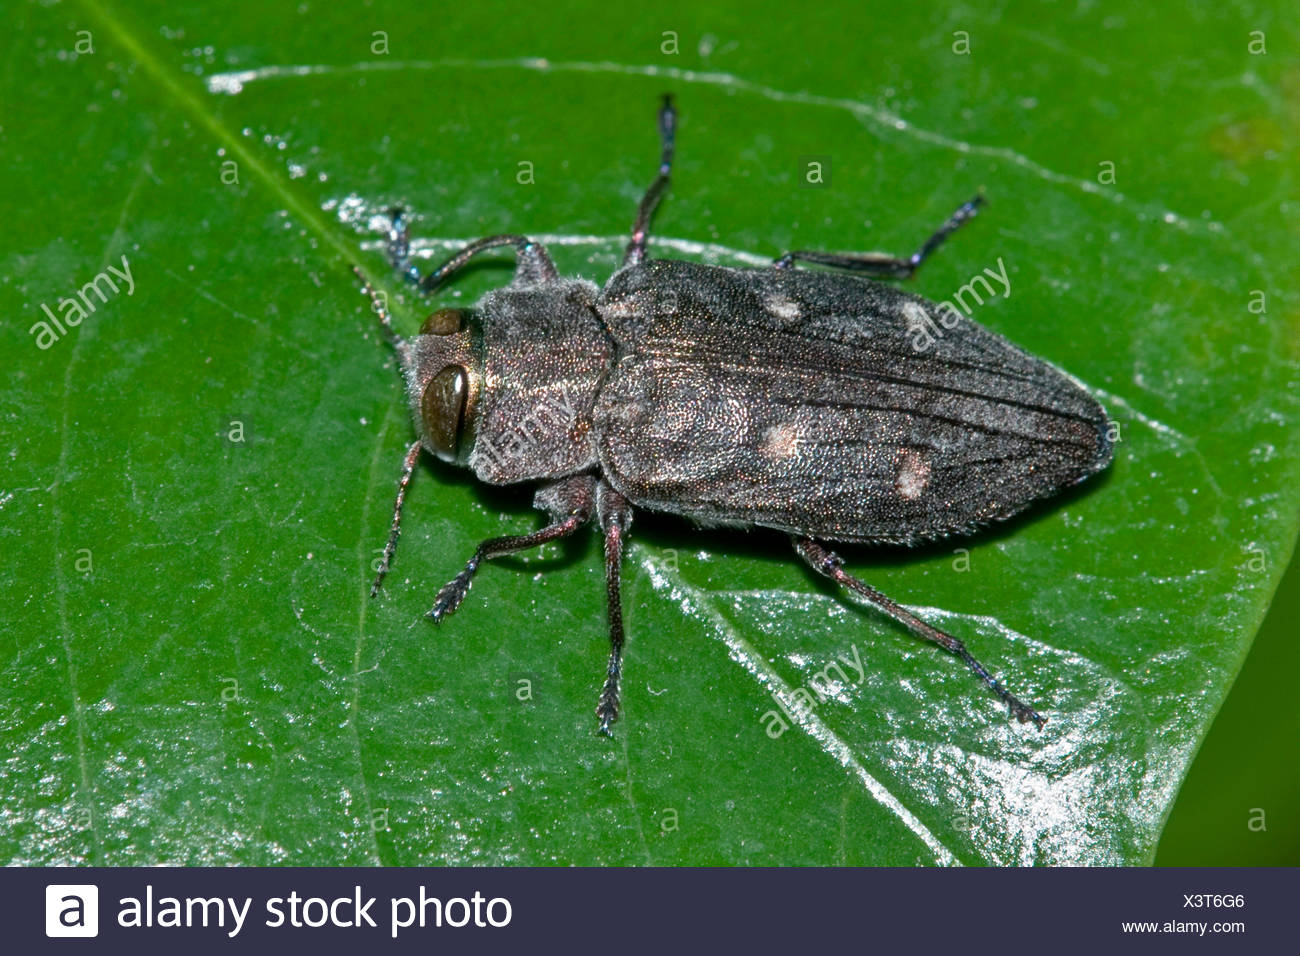 Chrysobothris affinis (Chrysobothris affinis), on a leaf, Germany - Stock Image